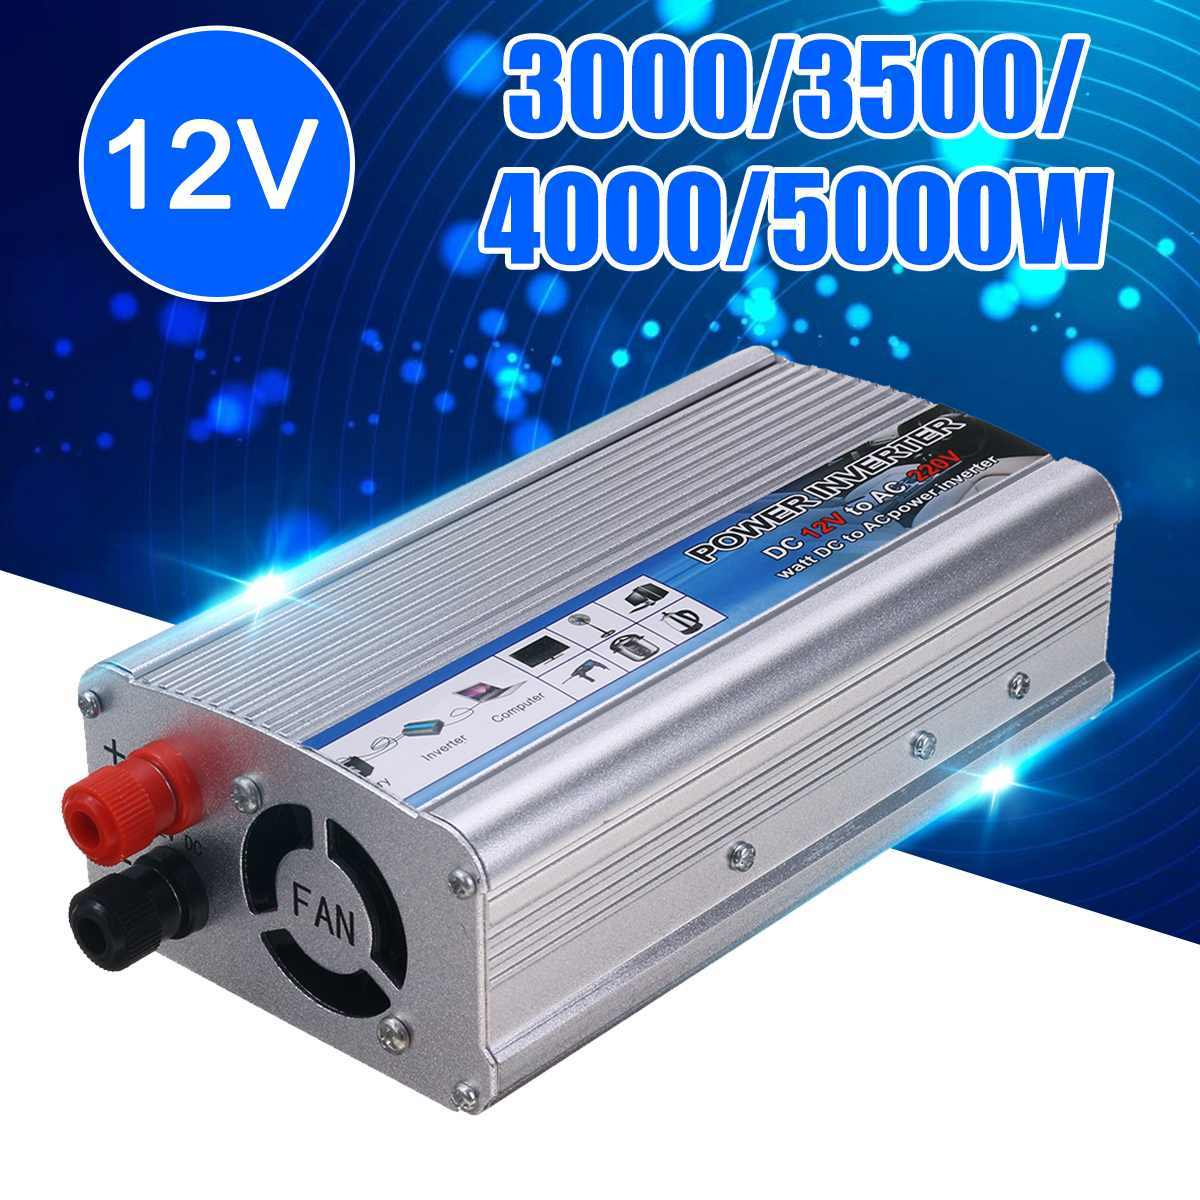 Hot 5000W-3000 Watt Tenaga Surya Inverter DC 12V untuk AC 220V USB Modified Sine Wave Konverter Daya Mobil inverter Charger Adaptor